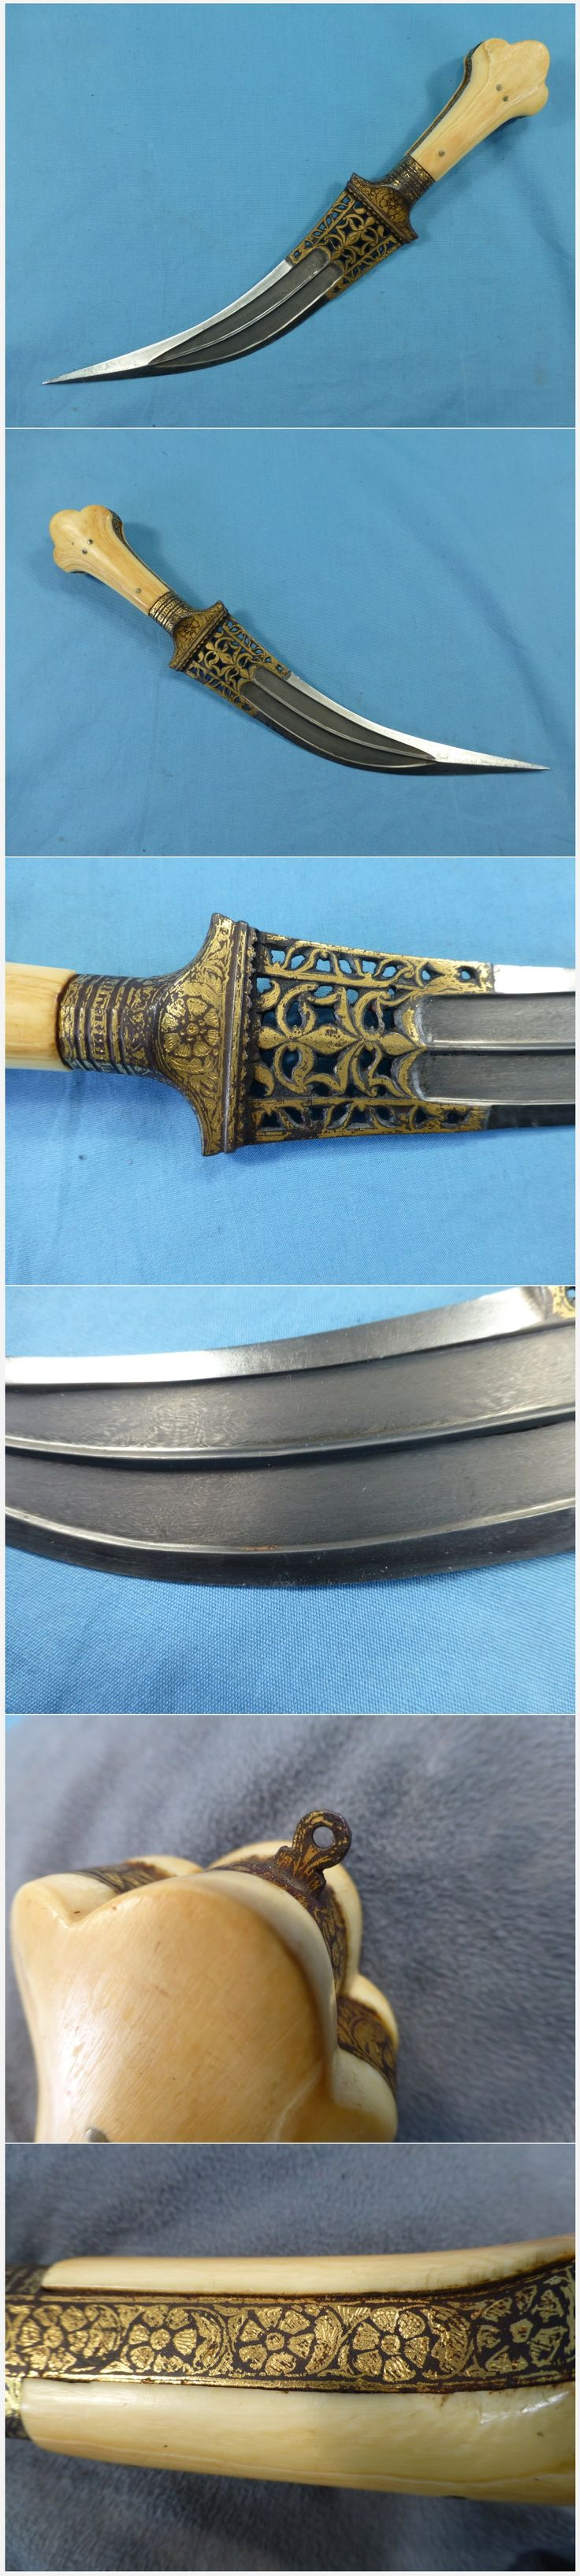 Indian (North) tiger tooth jambiya dagger, curved wootz (damascus, watered) steel blade pierced at its upper part with reinforced edges and slightly thickened tip, full tang with big bolsters, wide grip strap and very typical three lobed pommel, gold koftgari work on the ricasso bolsters and grip strap. The grips are ivory. Total length13 inches, blade 8 inches.